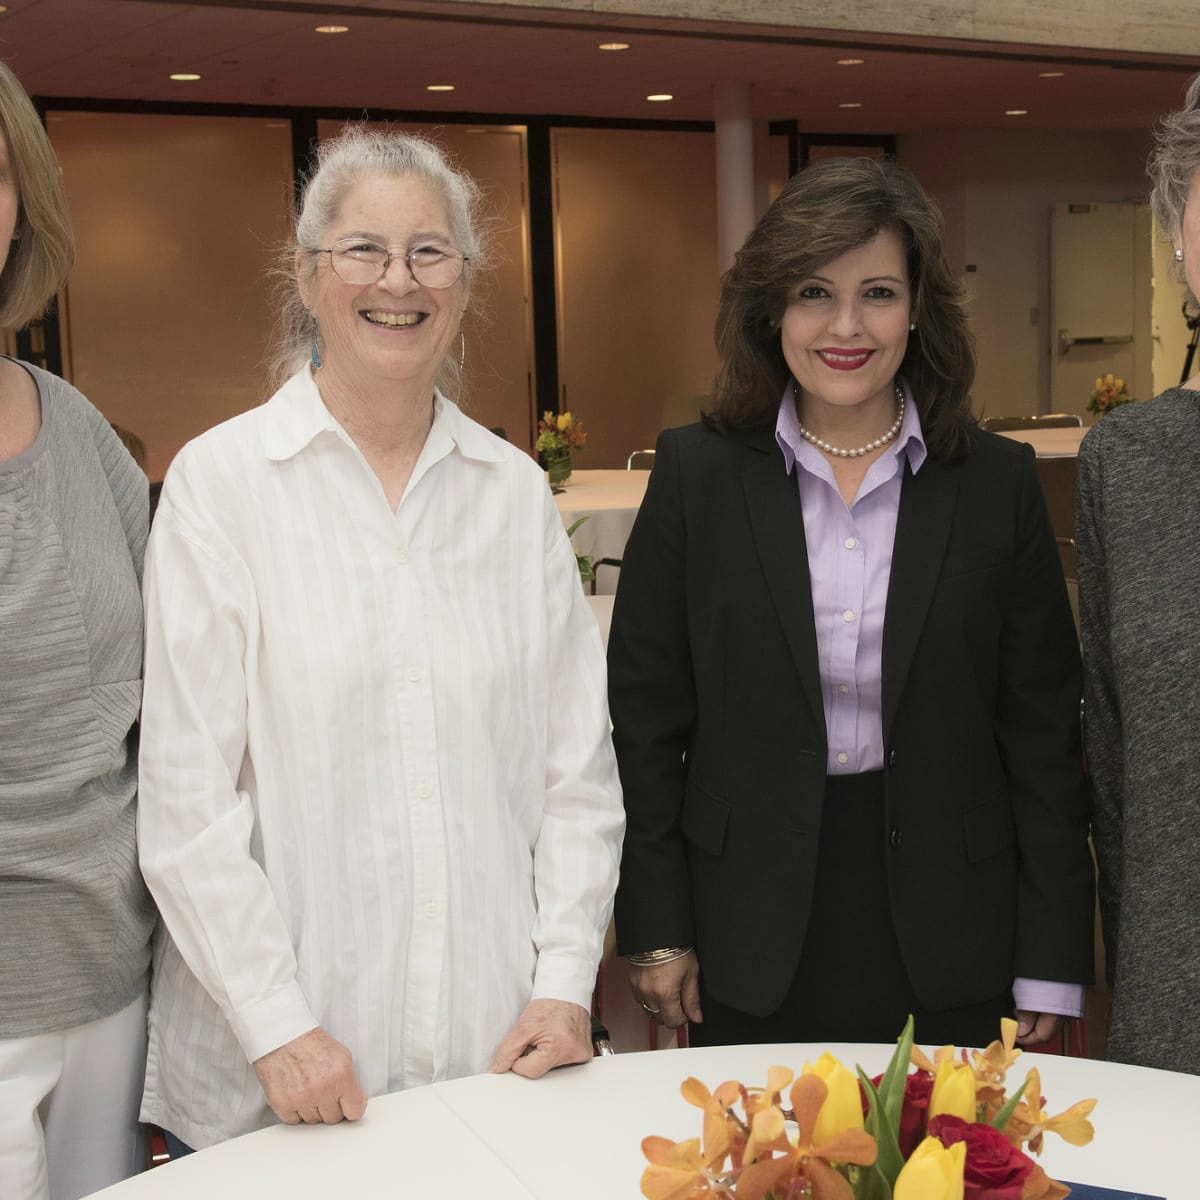 Women in Leadership luncheon LBJ Future Forum May 2016 Marilyn Talkington Joanne Richards Ana Jordan Jane Scroggs